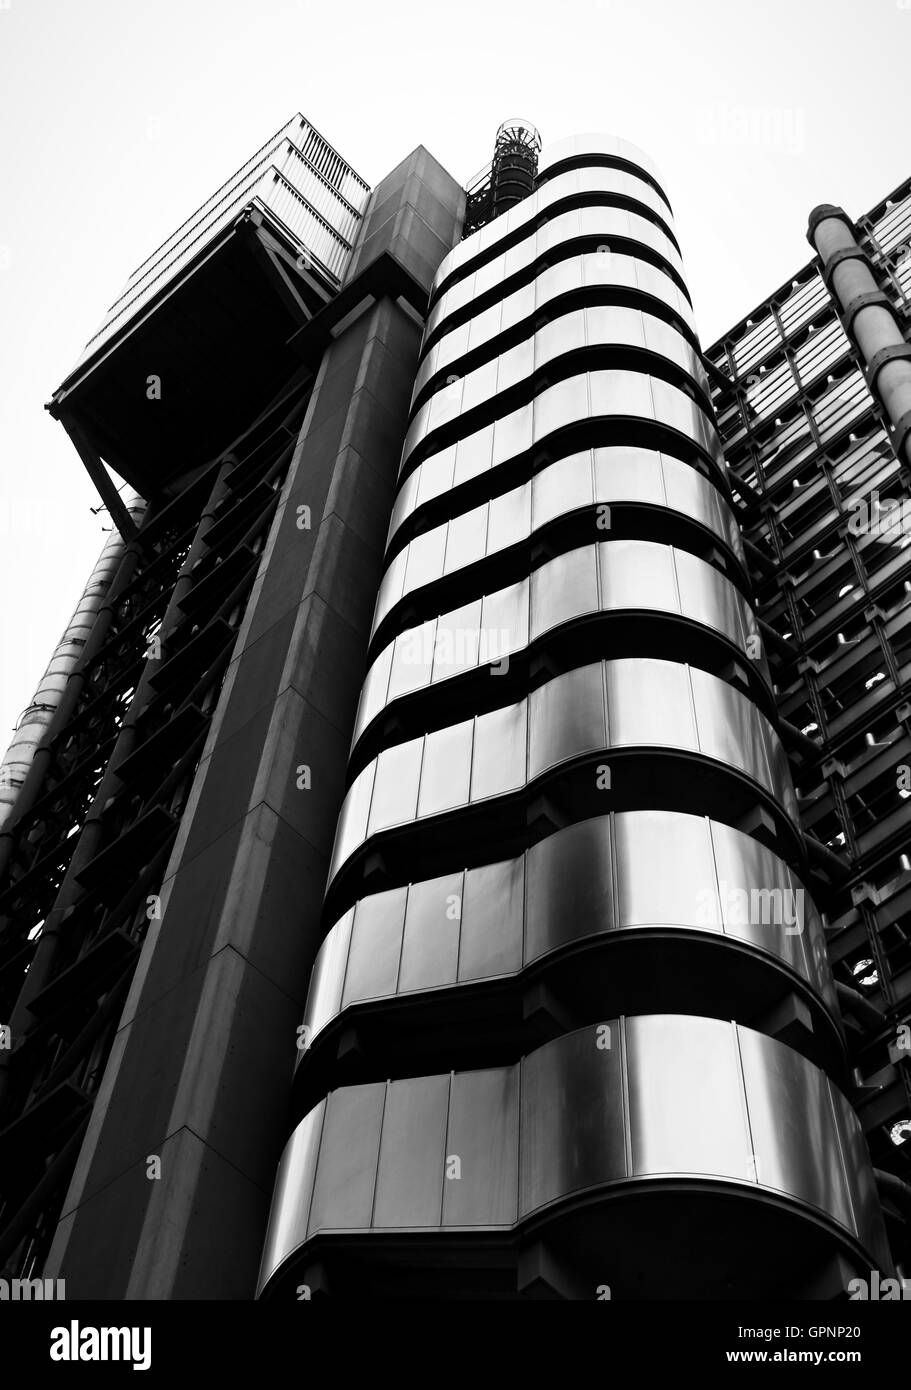 Lloyds of London - Stock Image